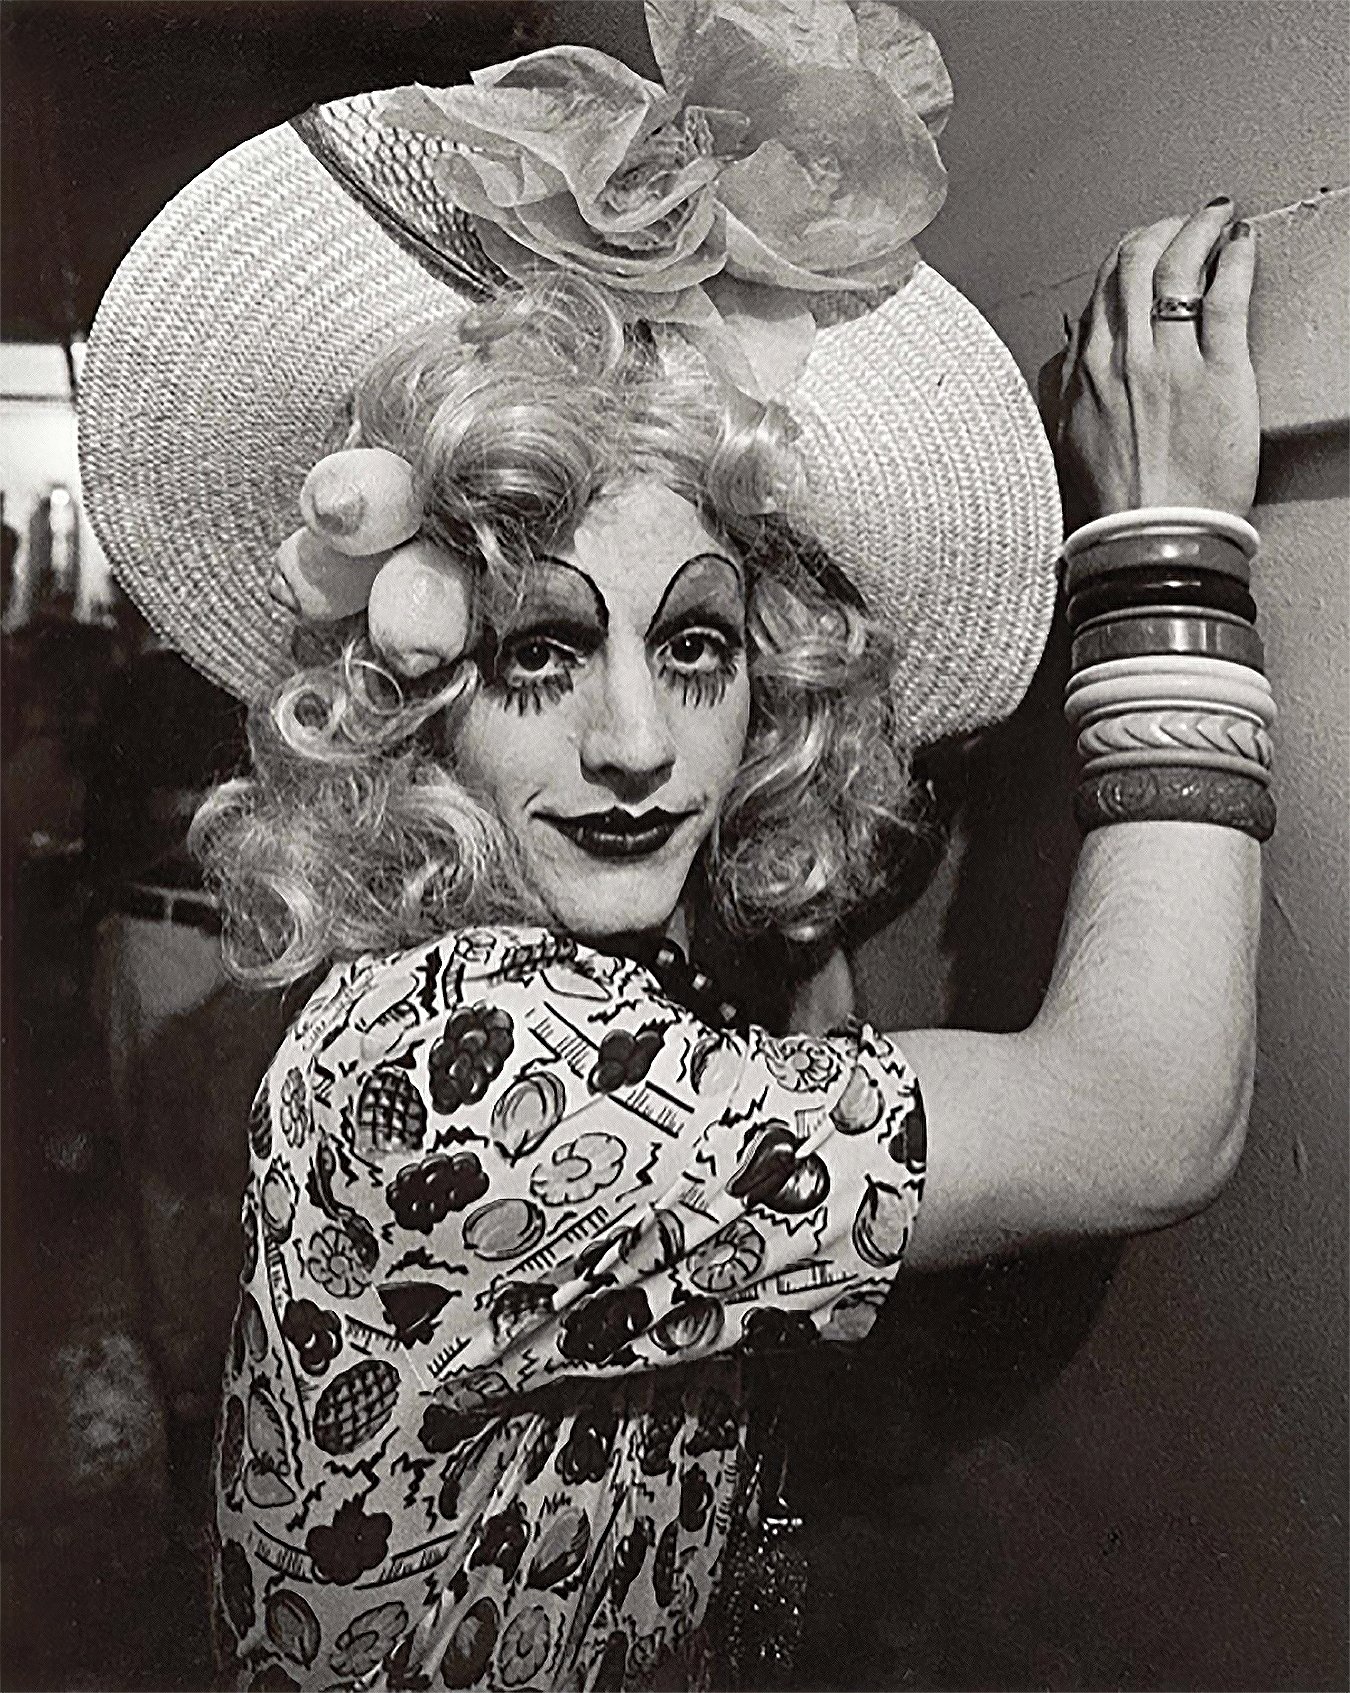 Tony_Ward_Studio_Charles_Gatewood_interview_dragqueen